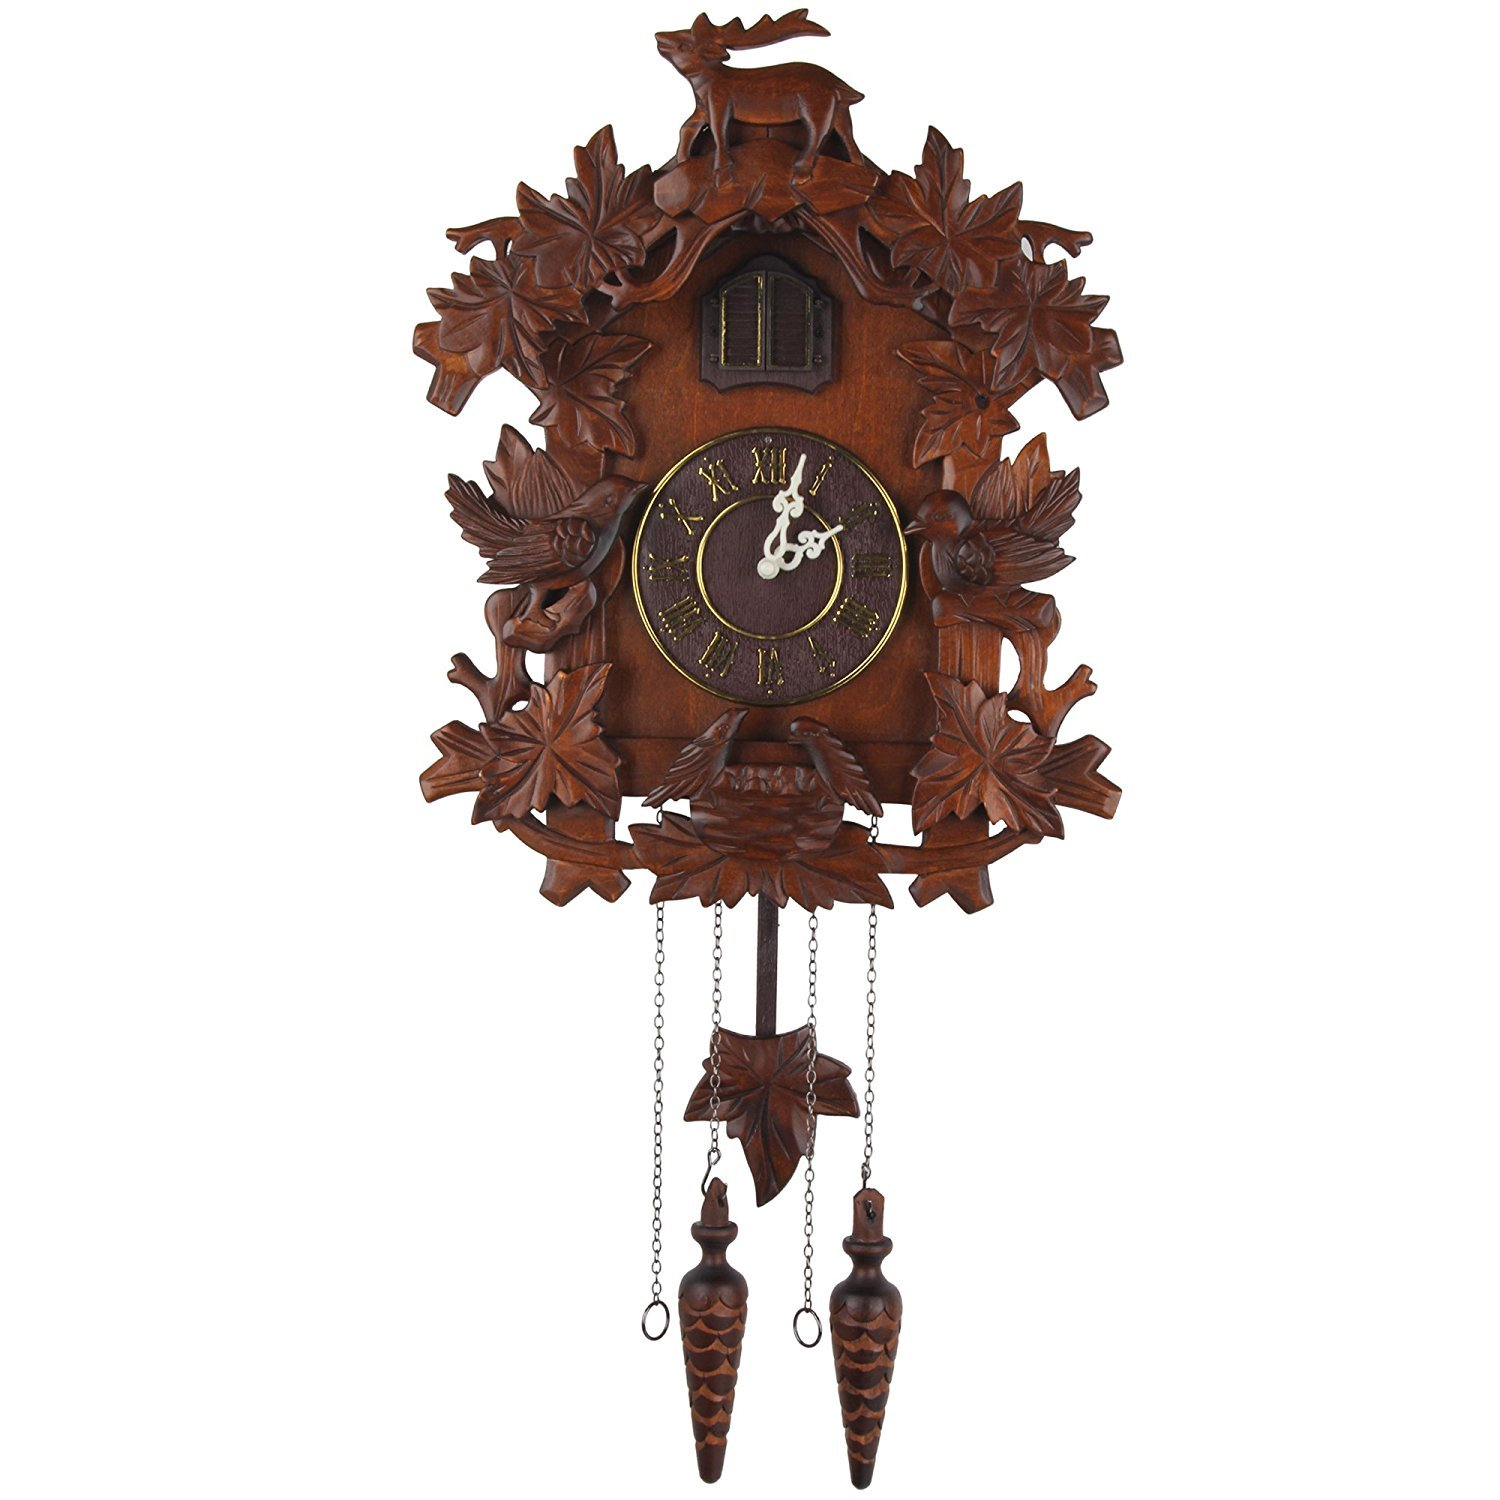 Kendal Handcrafted Wood Cuckoo Clock MX015-1 by Kendal